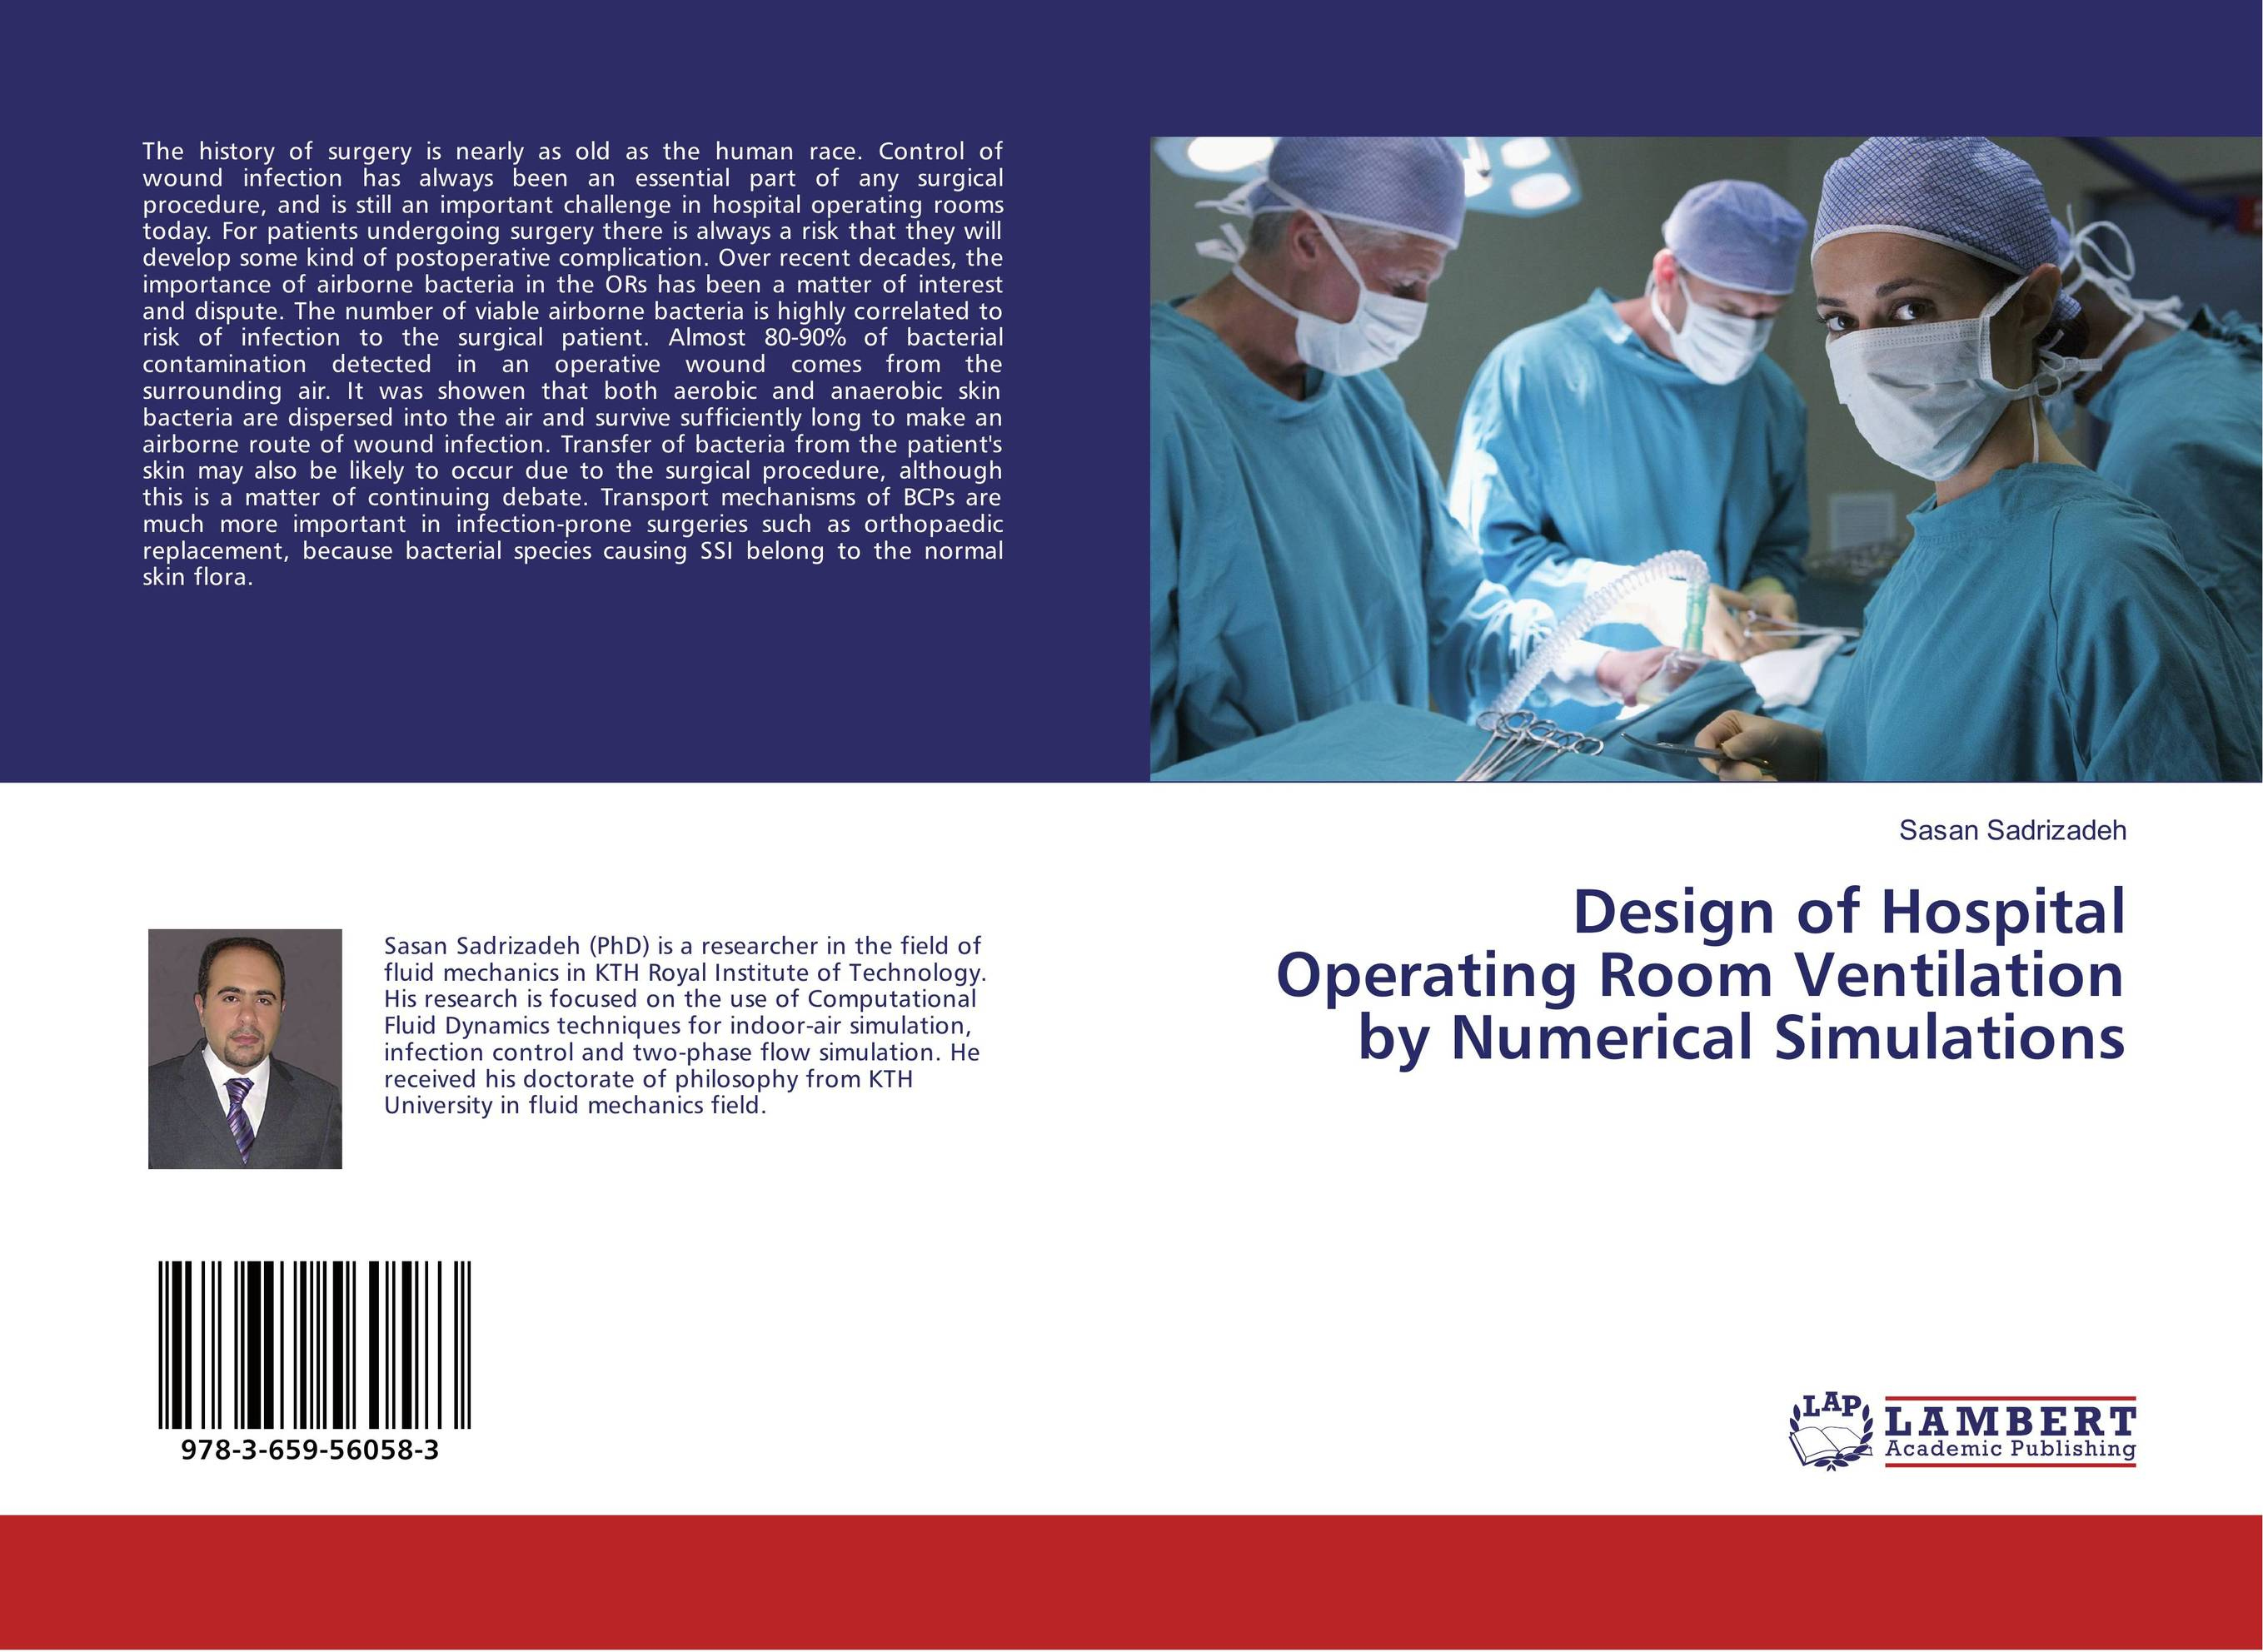 Design of Hospital Operating Room Ventilation by Numerical Simulations surveillance of surgical site infection in tertiary hospital